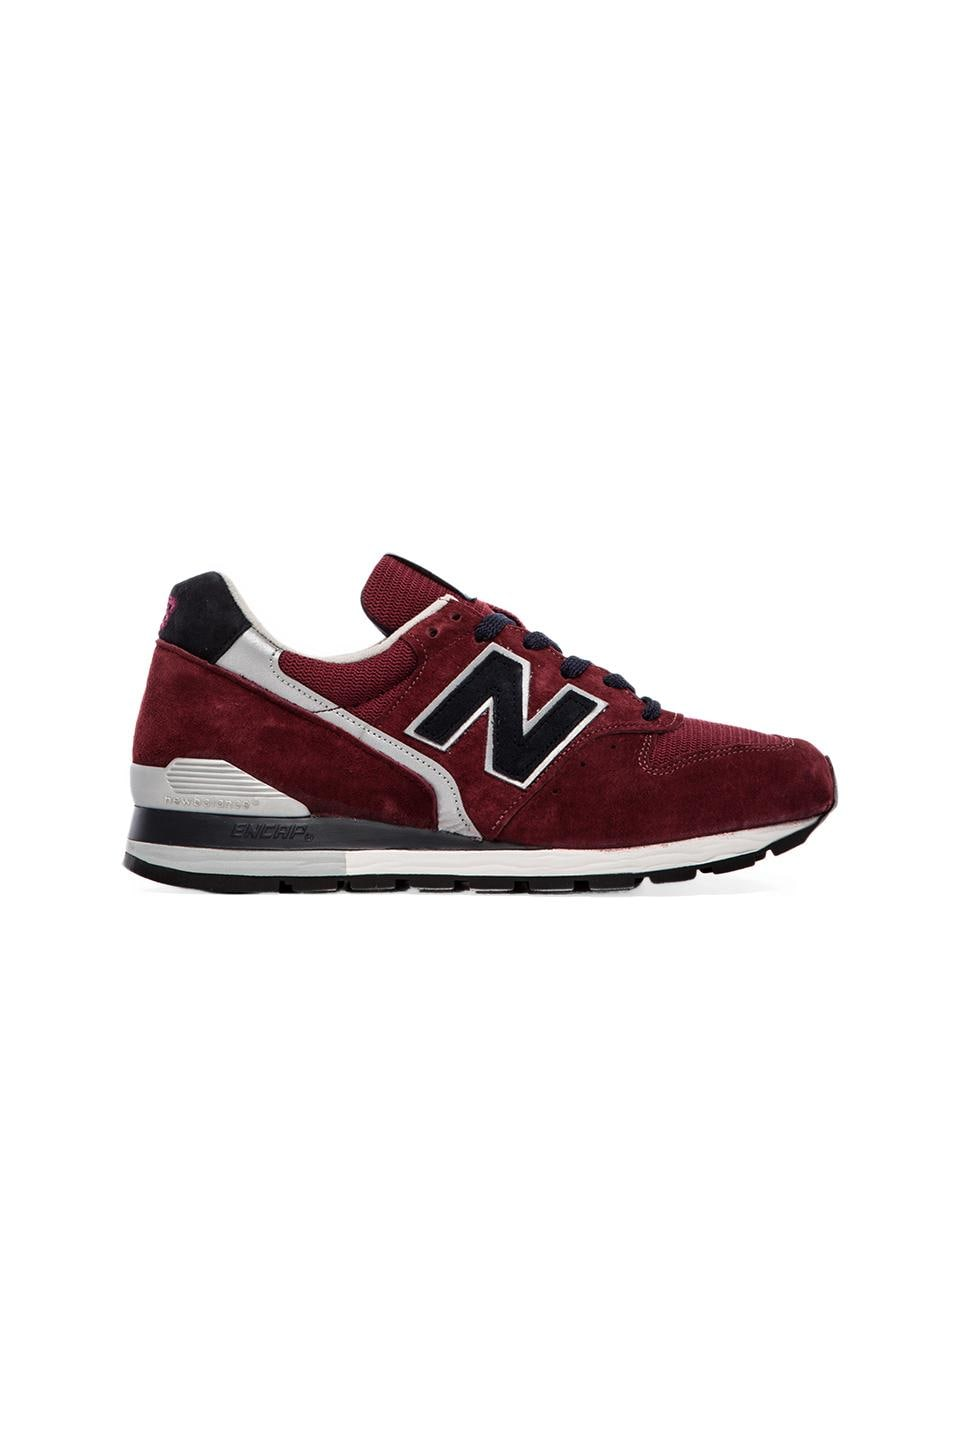 New Balance Made in the USA M996 Burgundy